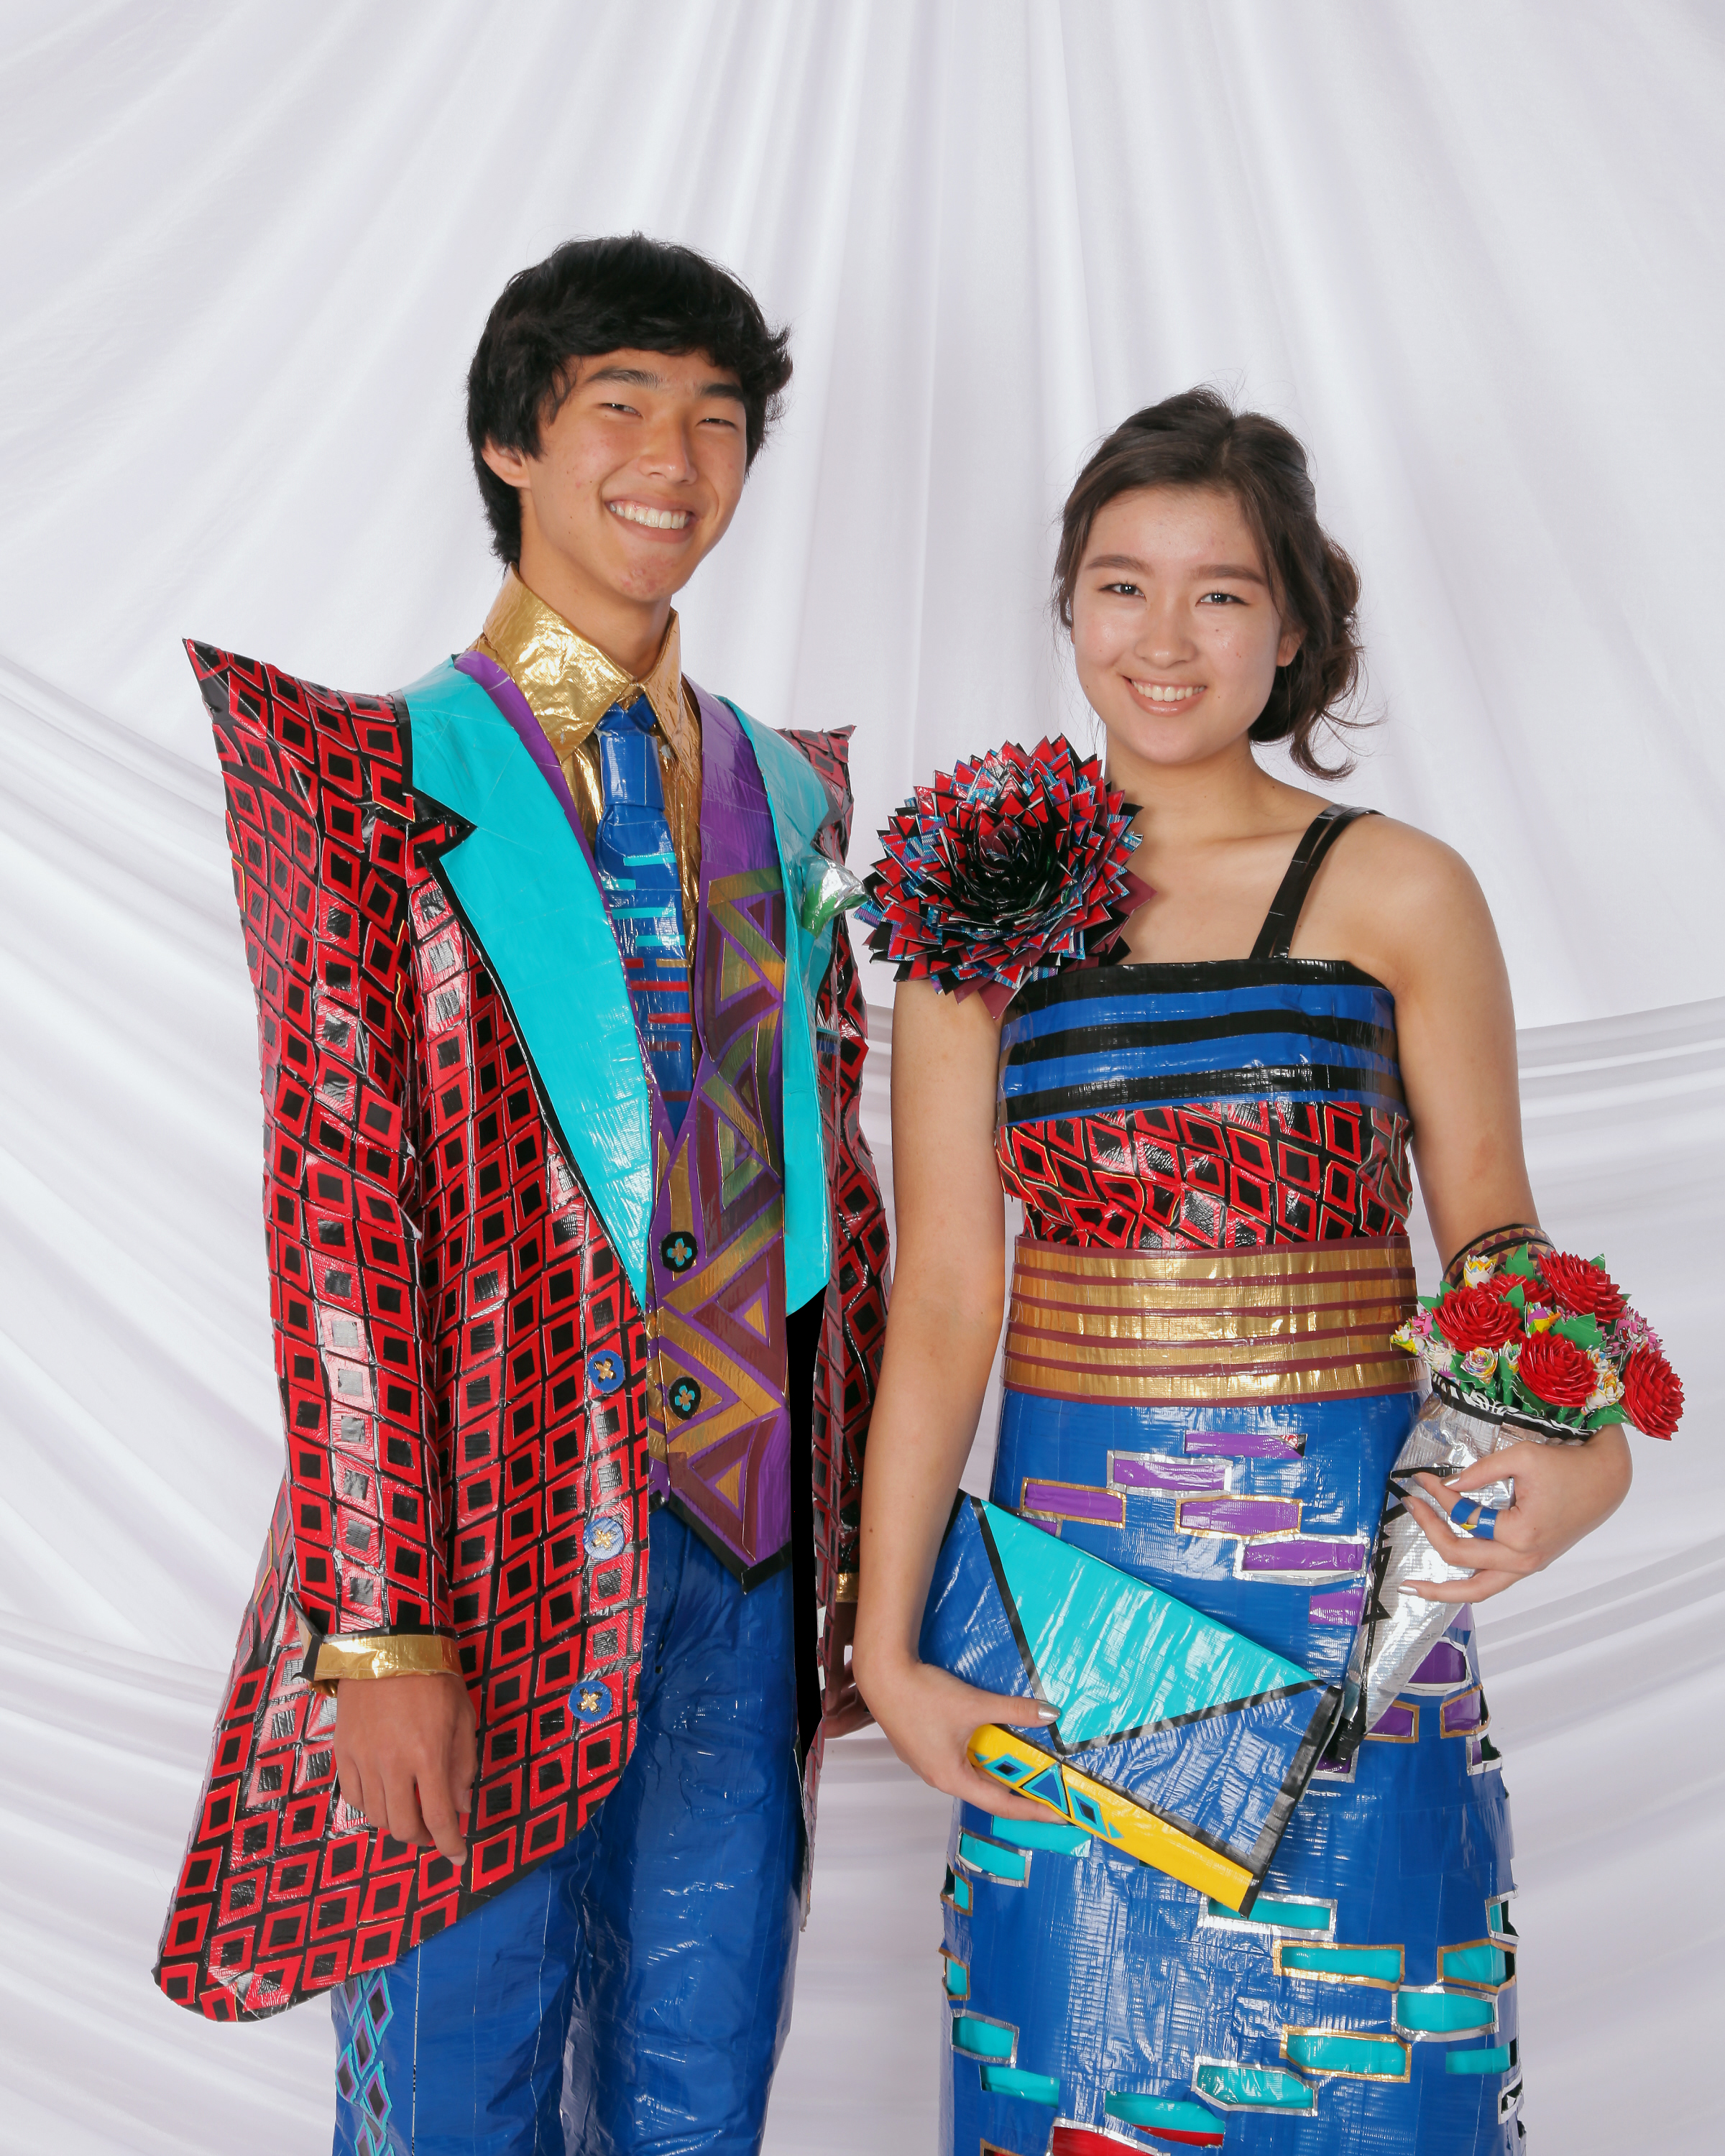 Best Duct Tape Prom Dresses | Dress images